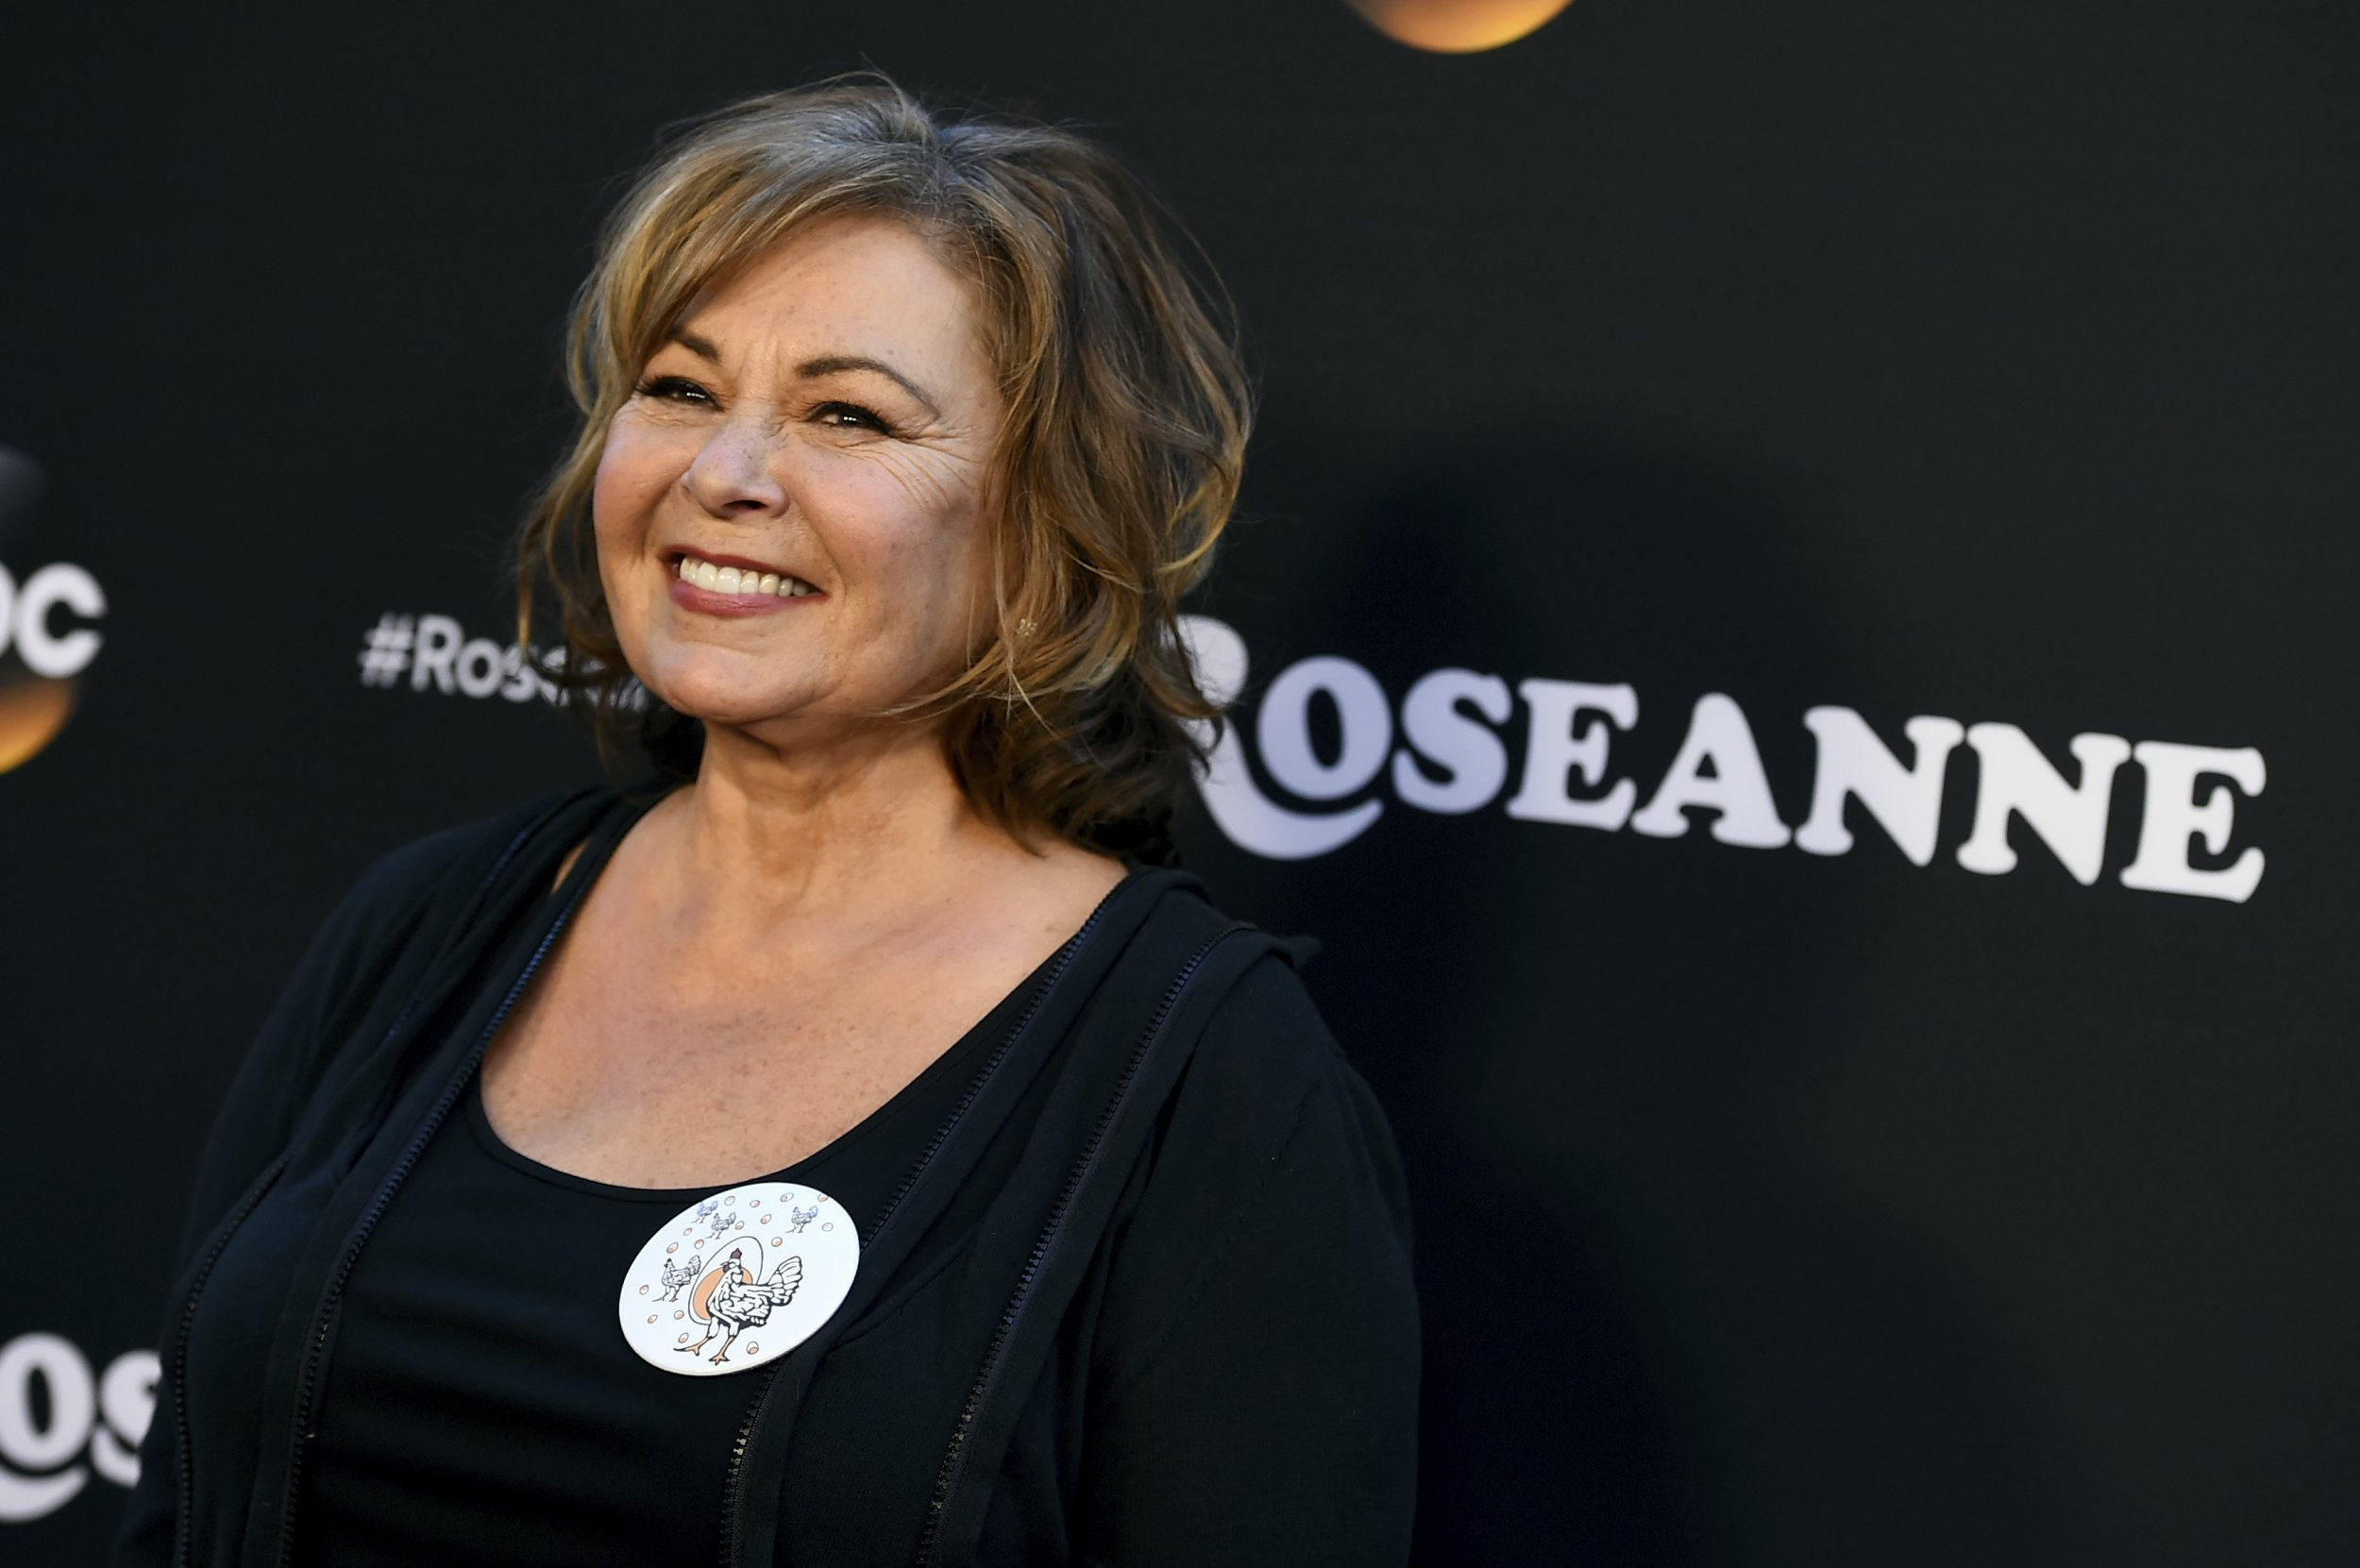 """FILE - In this March 23, 2018, file photo, Roseanne Barr arrives at the Los Angeles premiere of """"Roseanne"""" on Friday in Burbank, Calif. President Donald Trump called Barr after an estimated 18.4 million viewers tuned in for the reboot of """"Roseanne."""" Speaking by telephone on ABC???s ???Good Morning America??? Thursday, March 29, Barr said Wednesday night???s call was pretty exciting. (Photo by Jordan Strauss/Invision/AP, File)"""